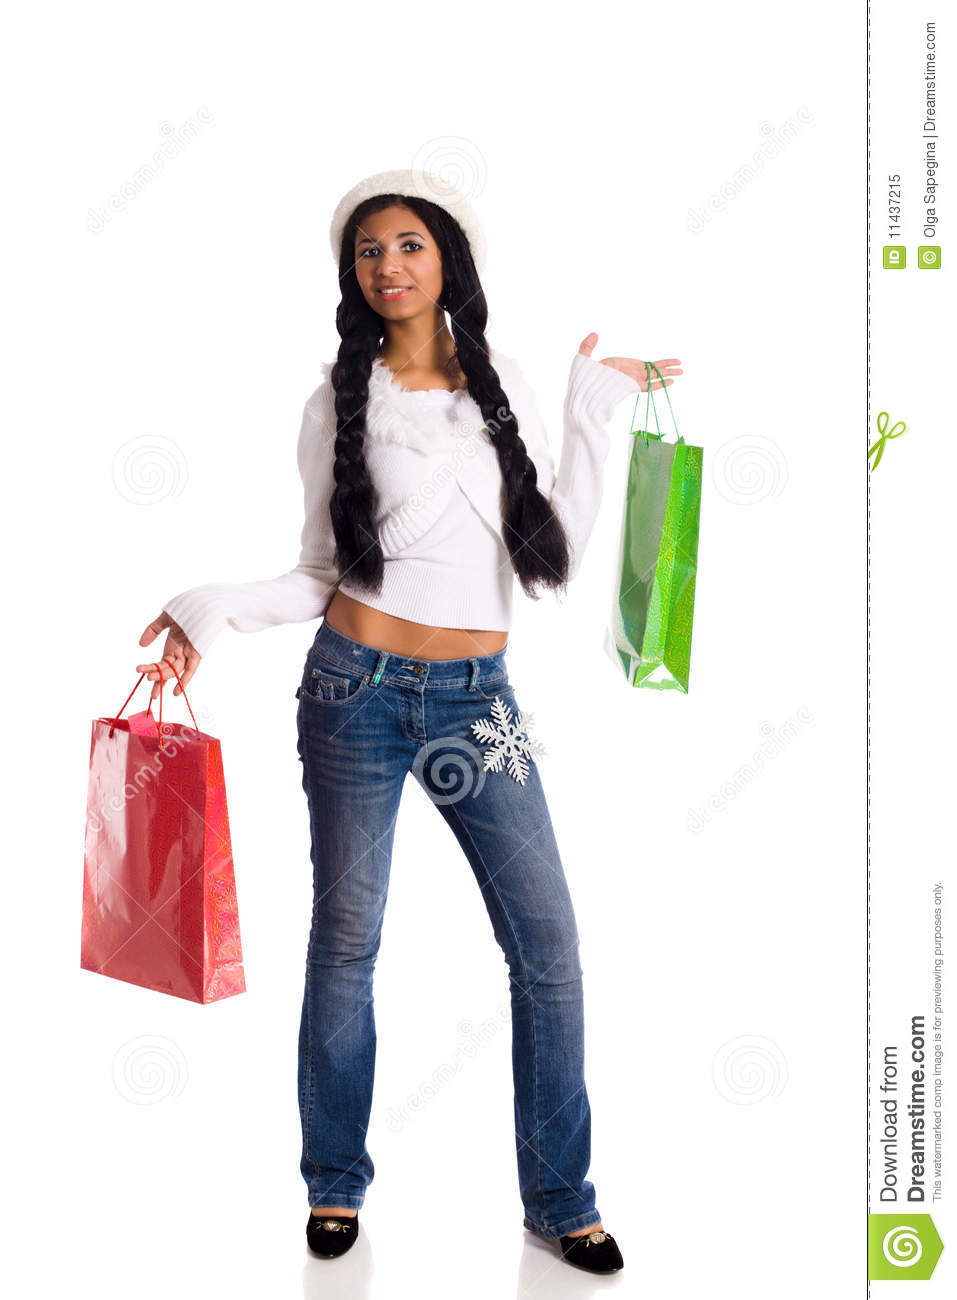 Unique Shopping Woman Holding Shopping Bags Stock Photo - Image 14250584